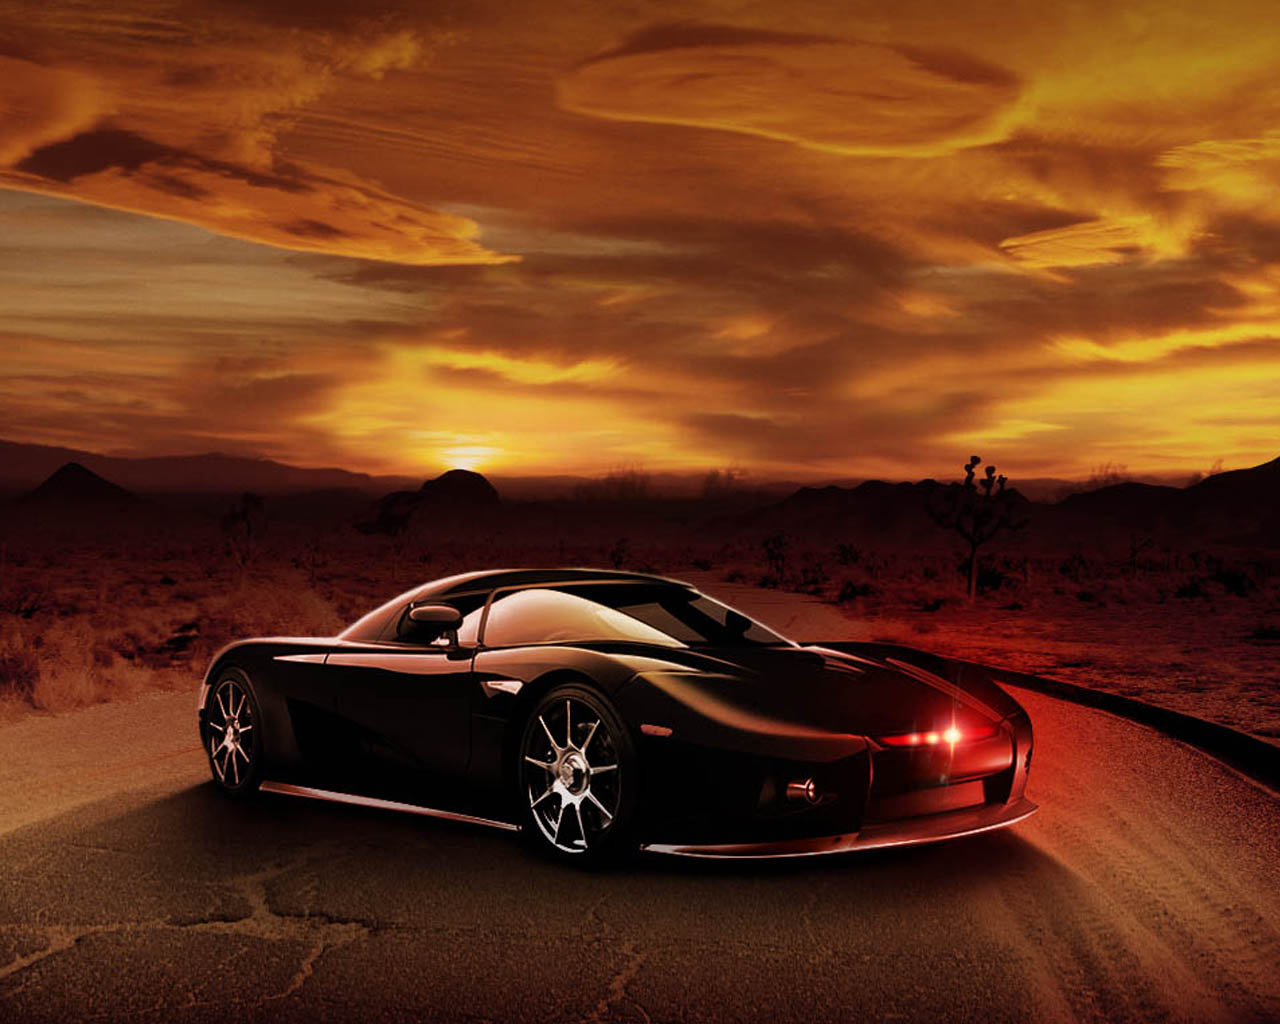 Knight Rider Wallpapers 1280x1024